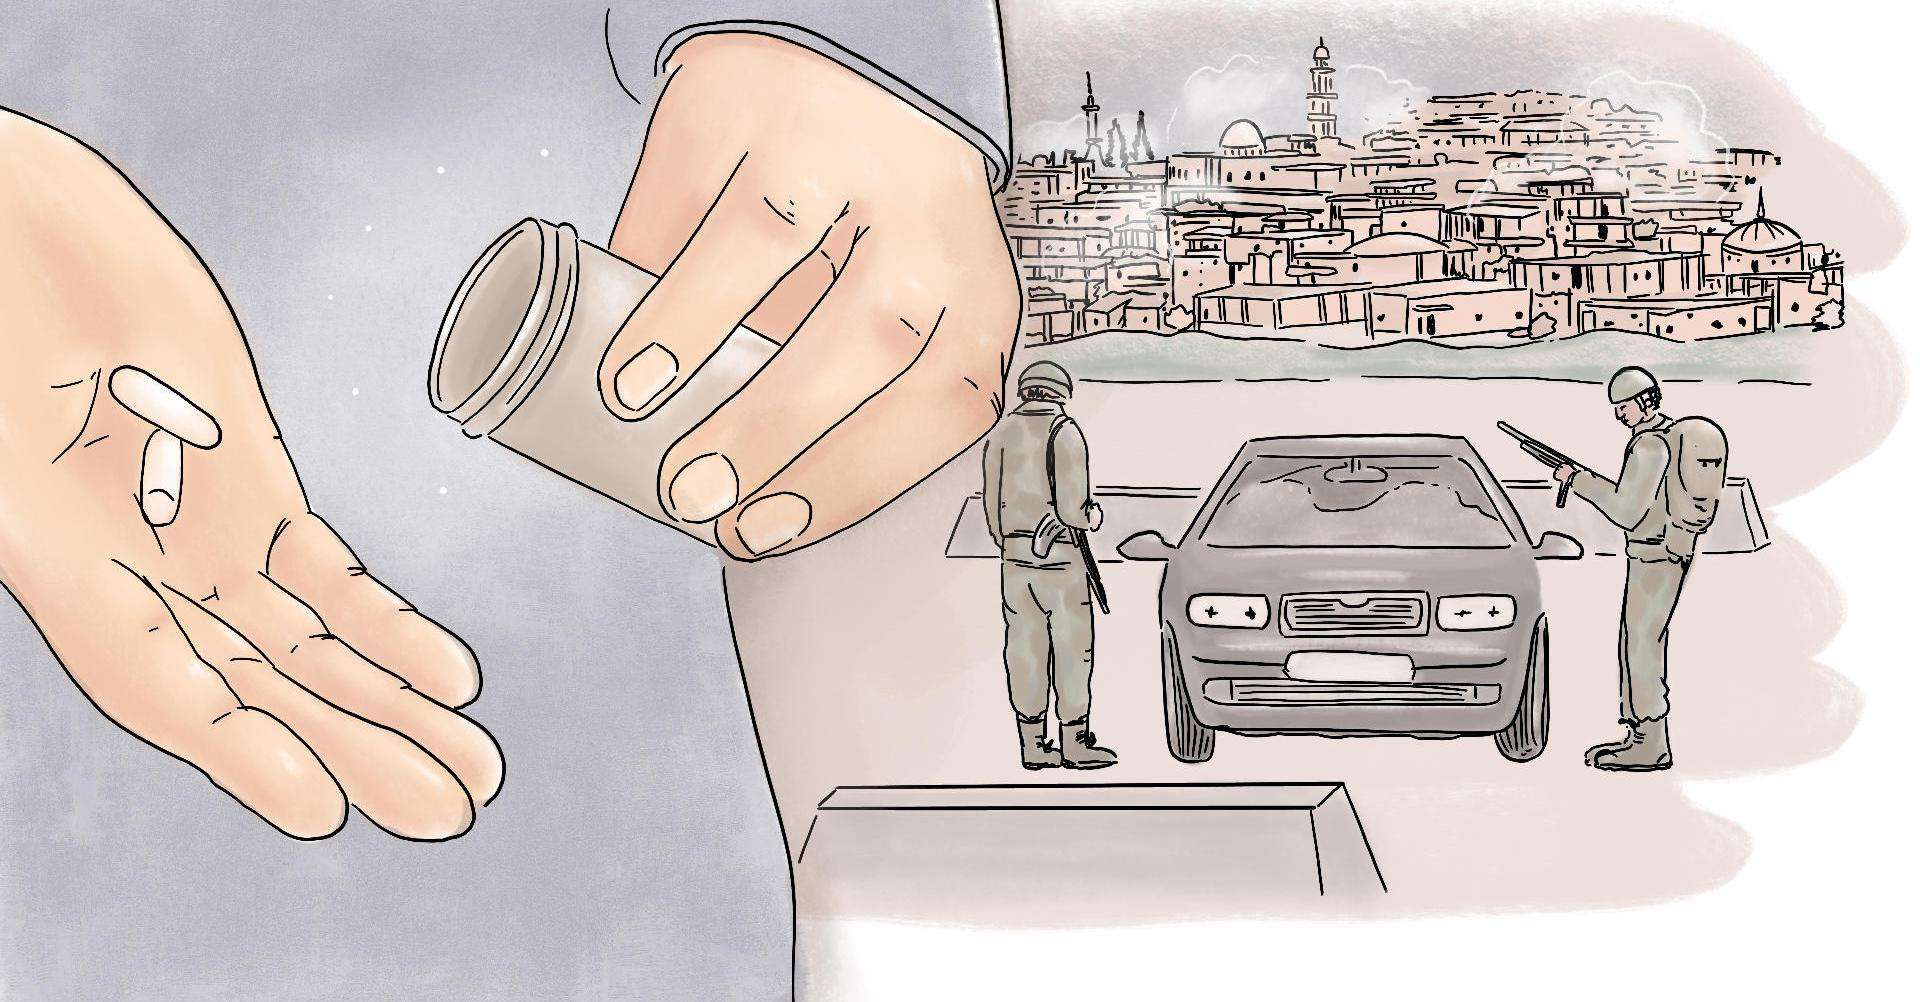 Difficulty in getting medicine in Syria depicted in an illustration